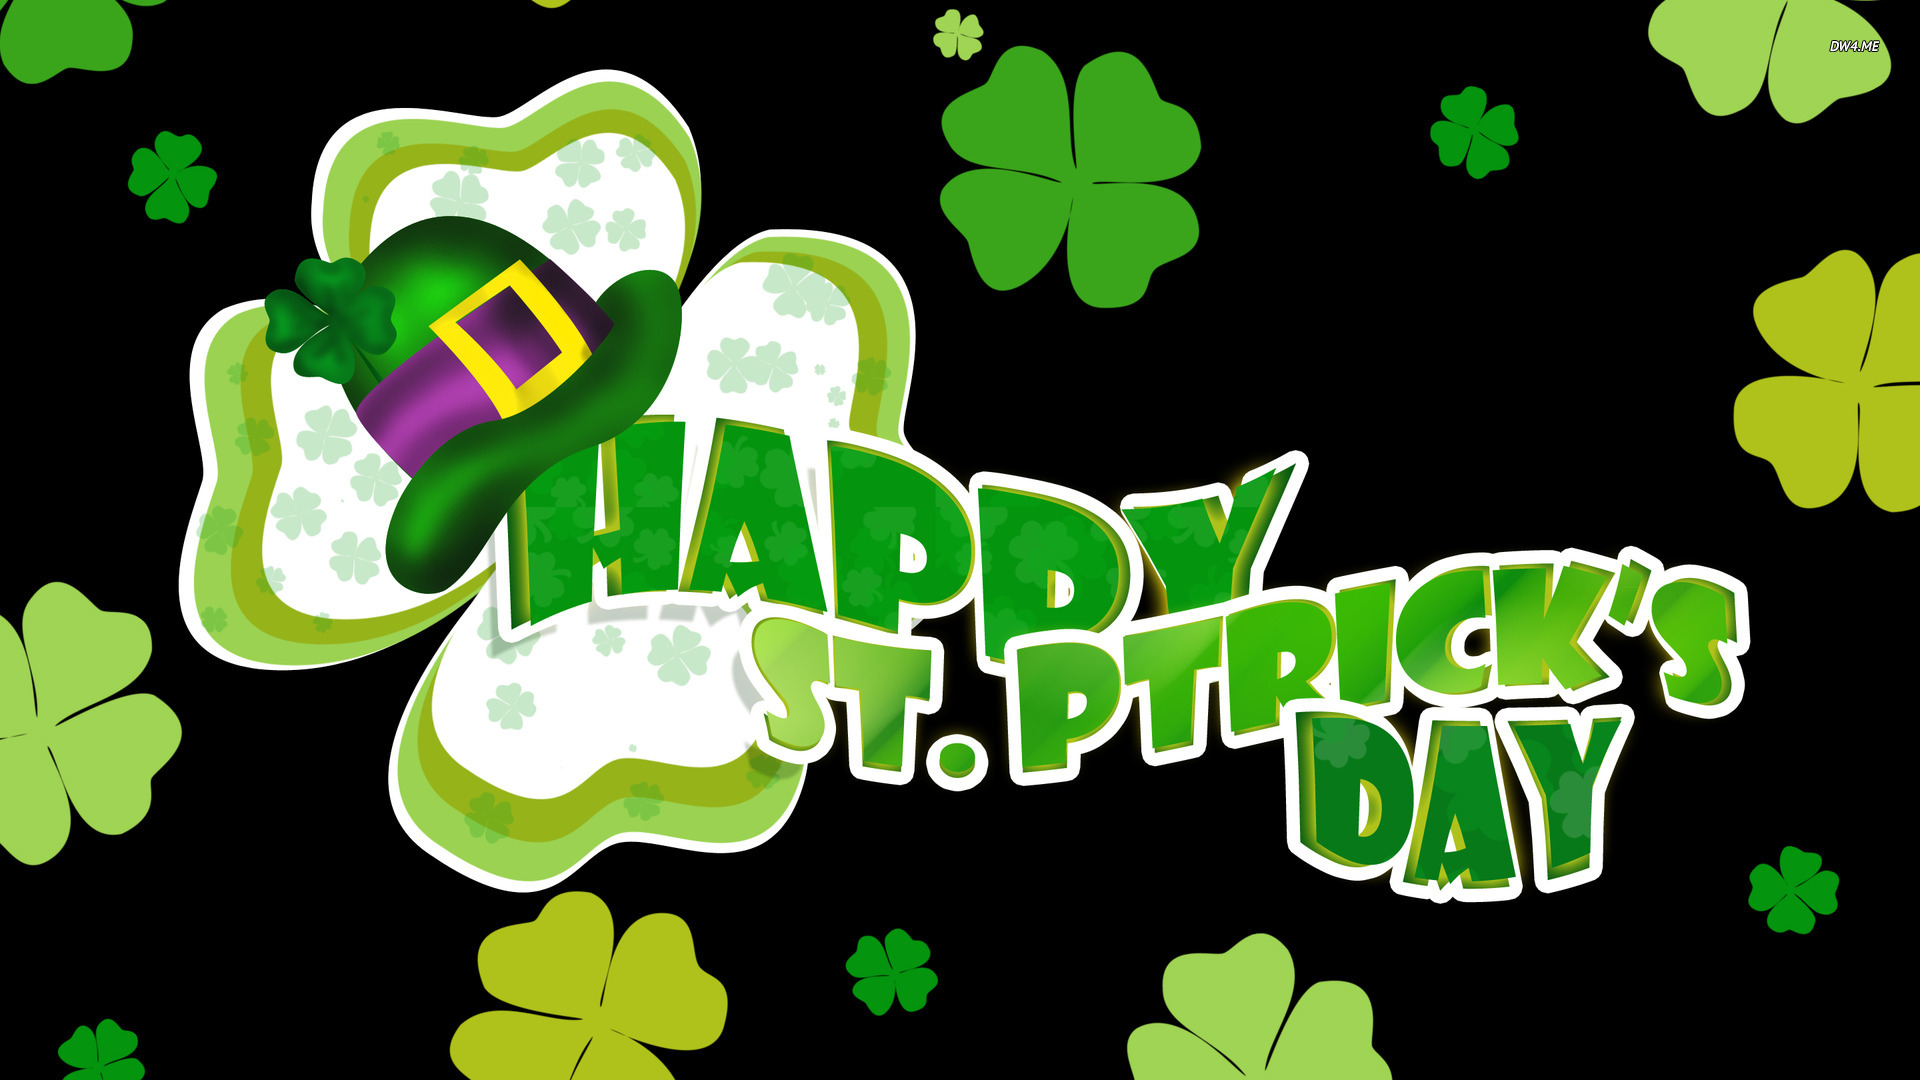 Happy St. Patrick's Day wallpaper - Holiday wallpapers - #1198